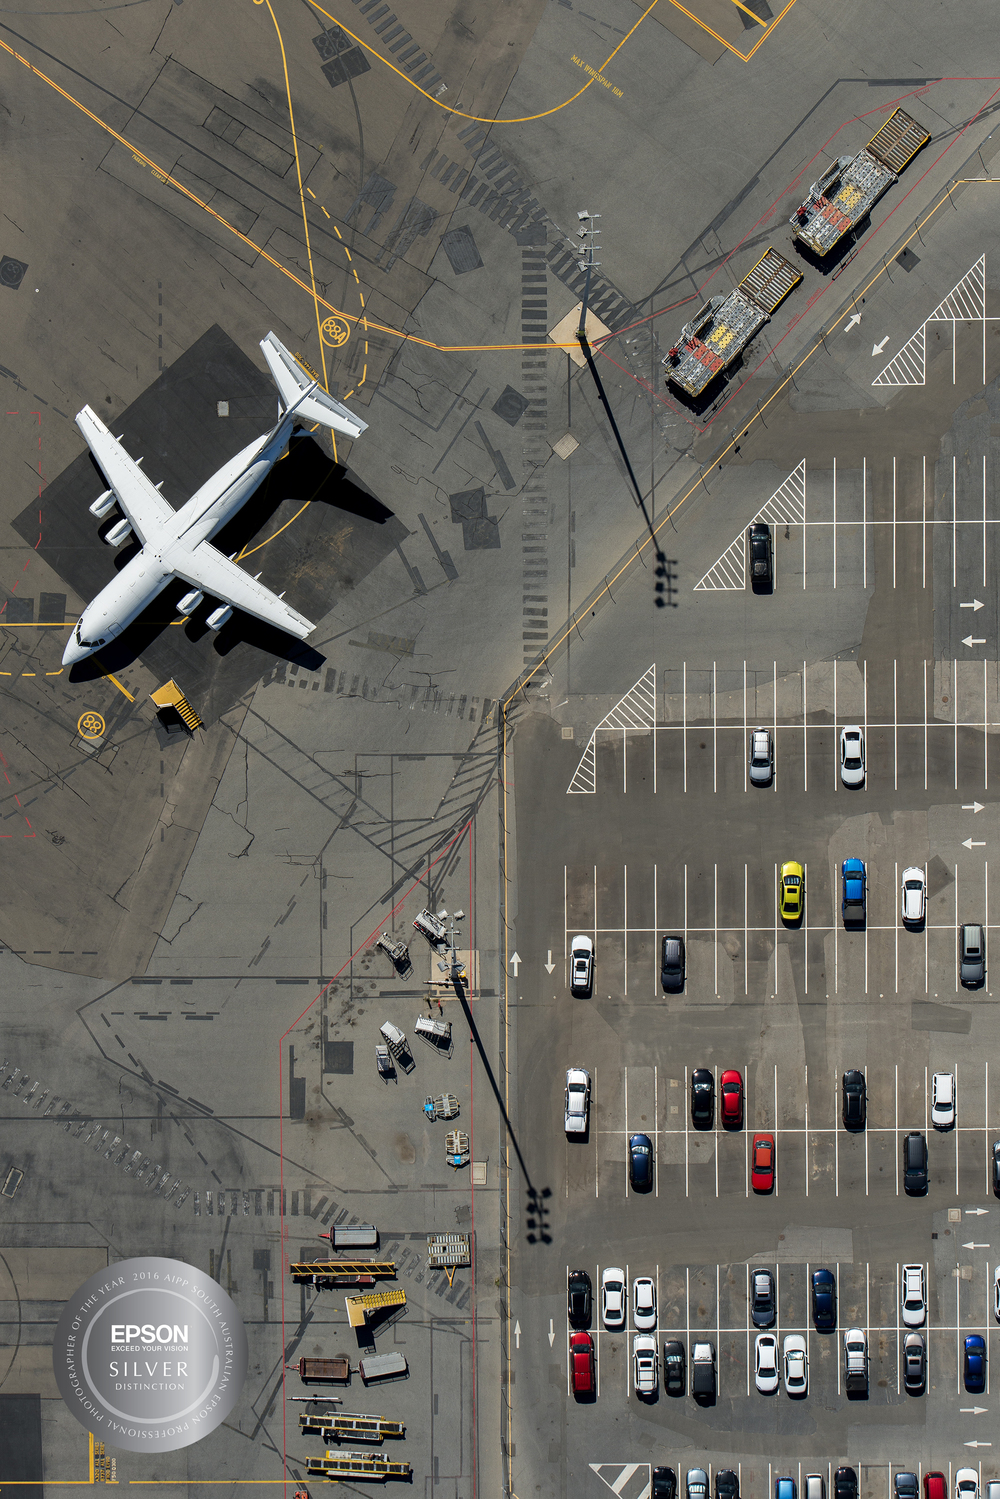 The long term car park at Adelaide Airport with a  BAE146  aircraft. When flying at 500ft in a helicopter everything happens very fast below, you really trust your instincts for framing and subconsciously 'seeing' - this was captured during a charter to photograph the new solar installation on the roof of the Adelaide Airport carpark as well as various sites around the airport precinct for both  Solgen  and the airport . I really like the strong opposing shadows from the floodlights (and the cars that look like Matchbox toys!). Shot on a Nikon D800 and processed in Lightroom and Photoshop.